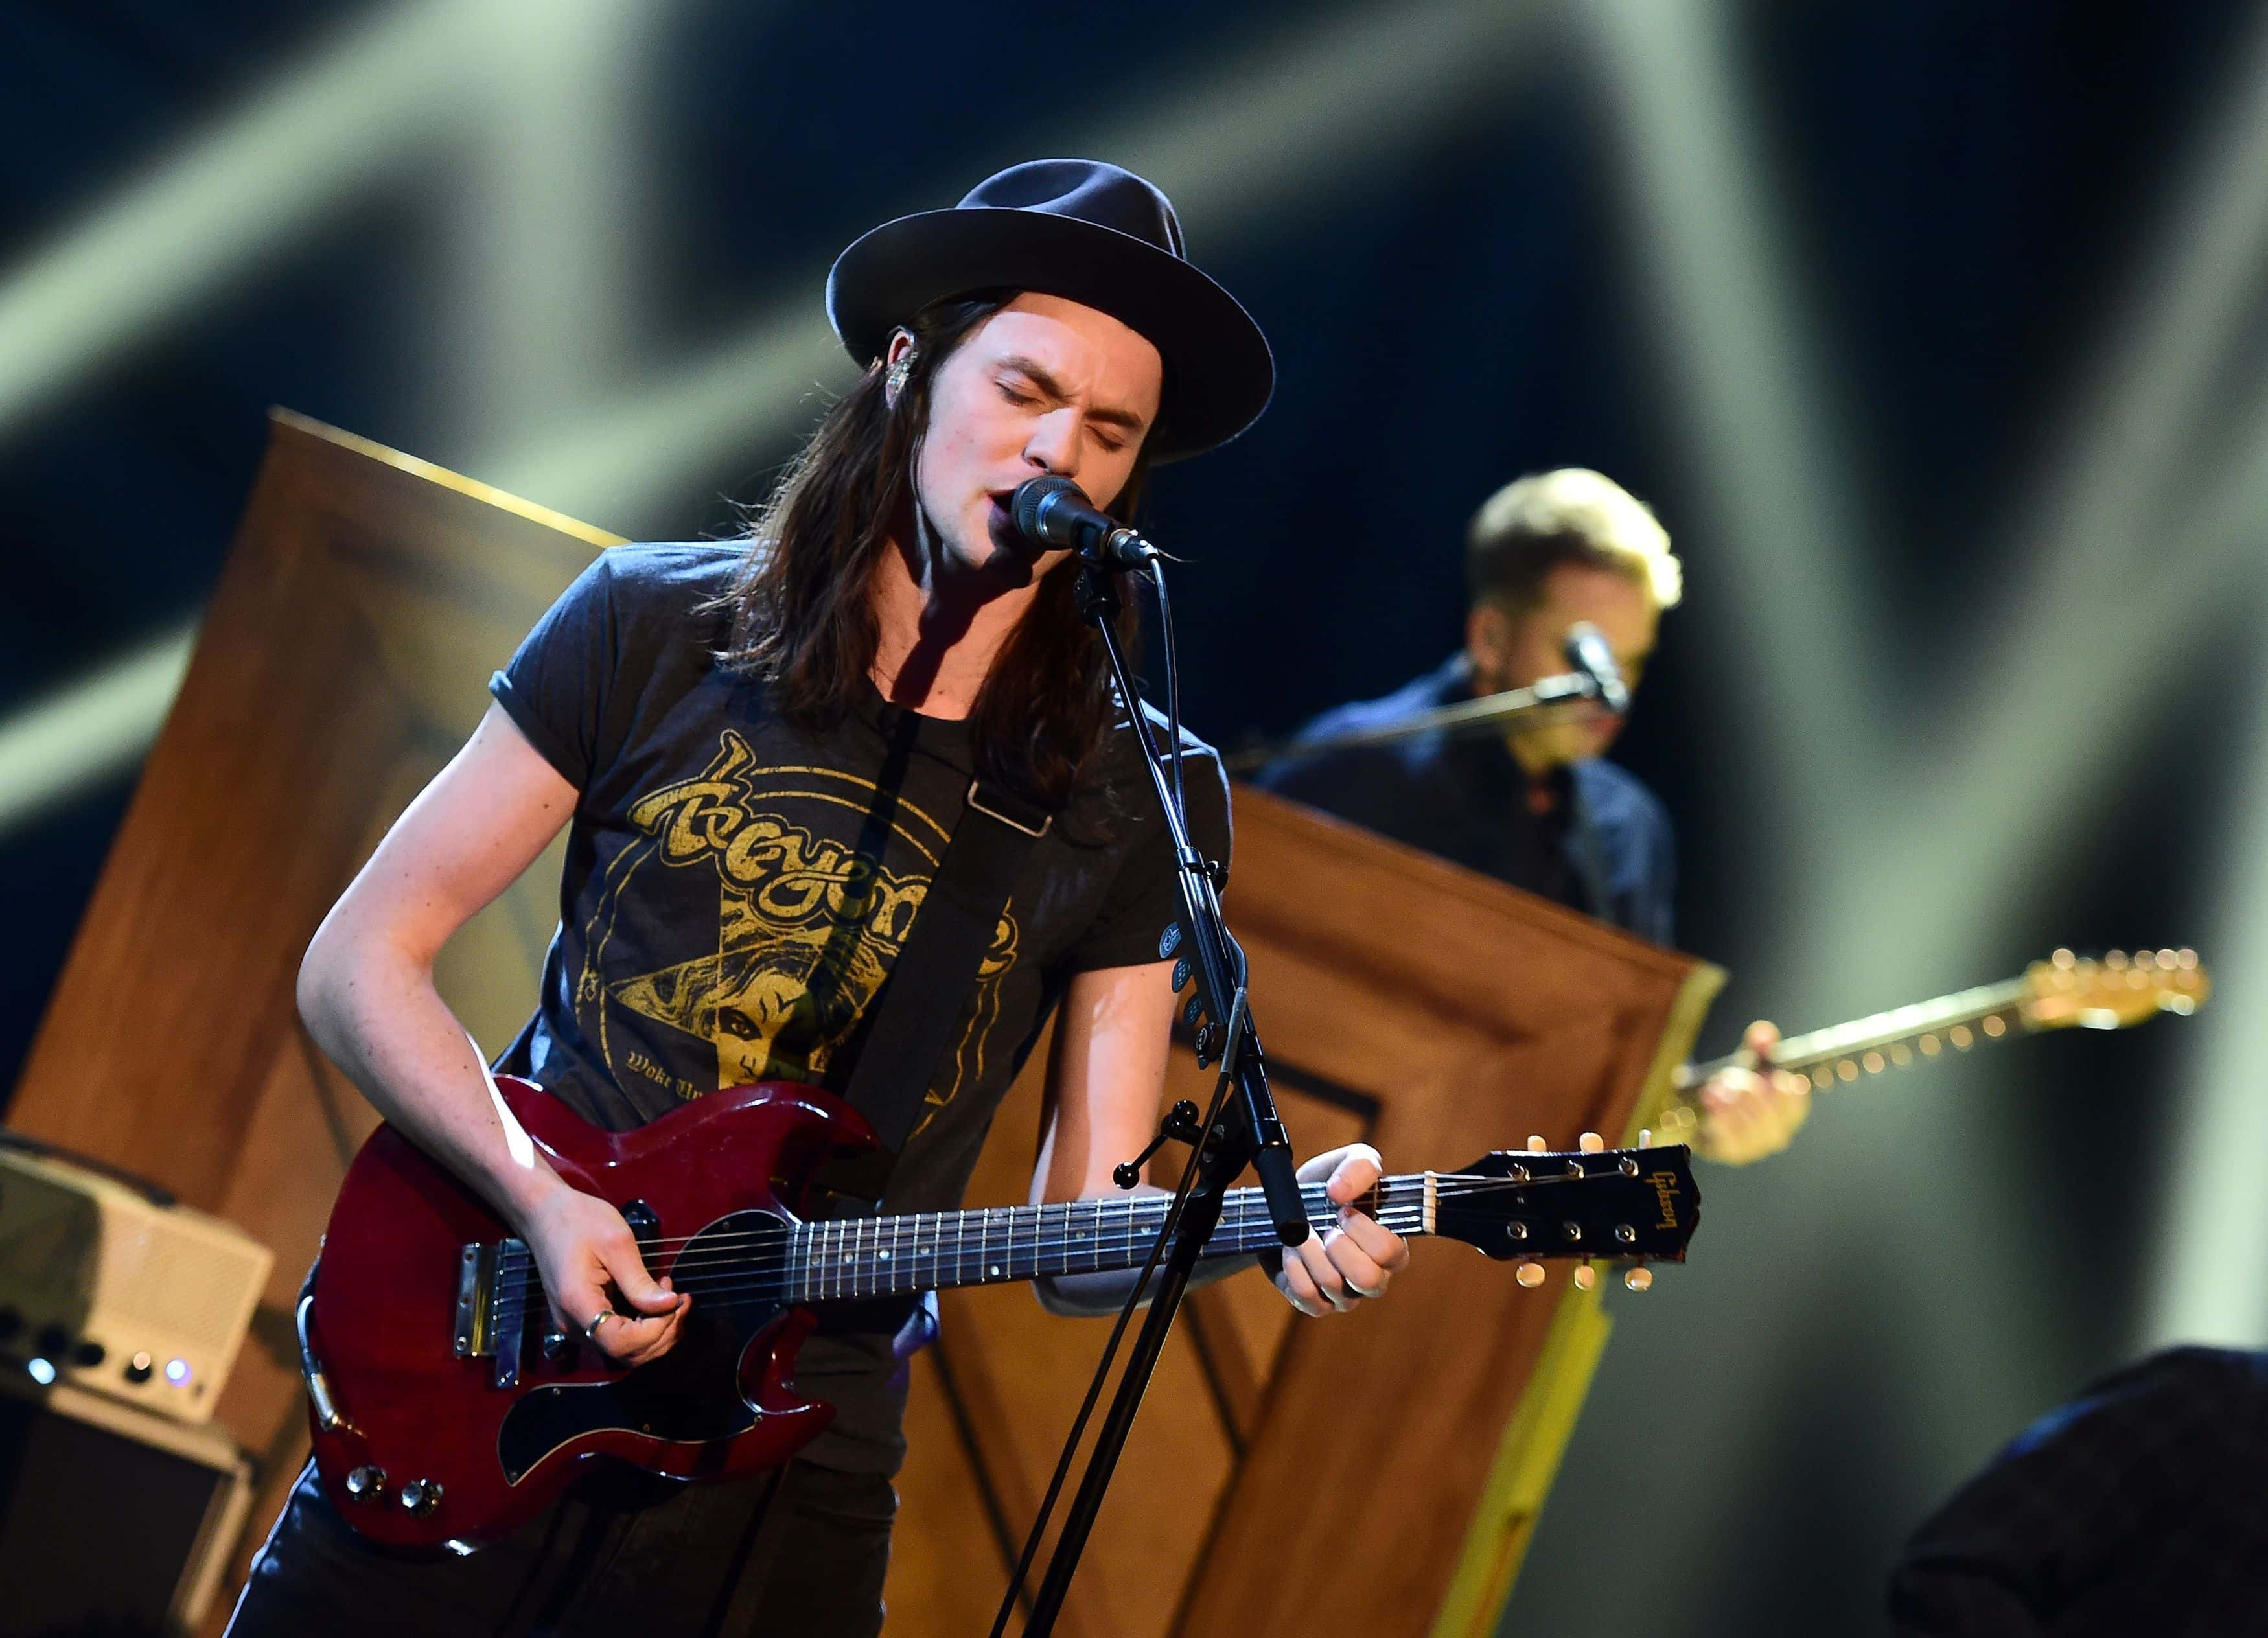 James Bay performing during the filming of the Graham Norton Show at The London Studios, south London.